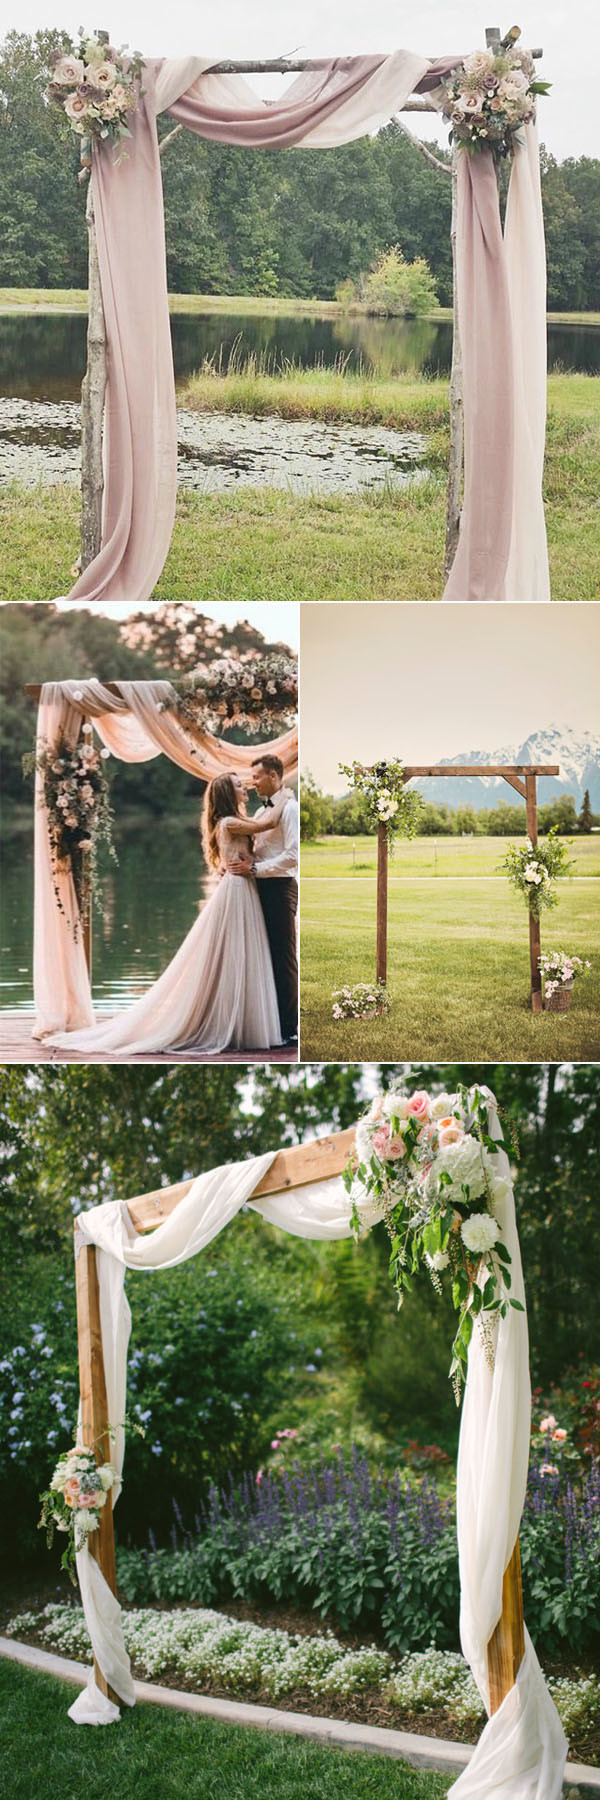 32 rustic wedding decoration ideas to inspire your big day oh best rustic wedding arches for your outdoor wedding ideas junglespirit Gallery